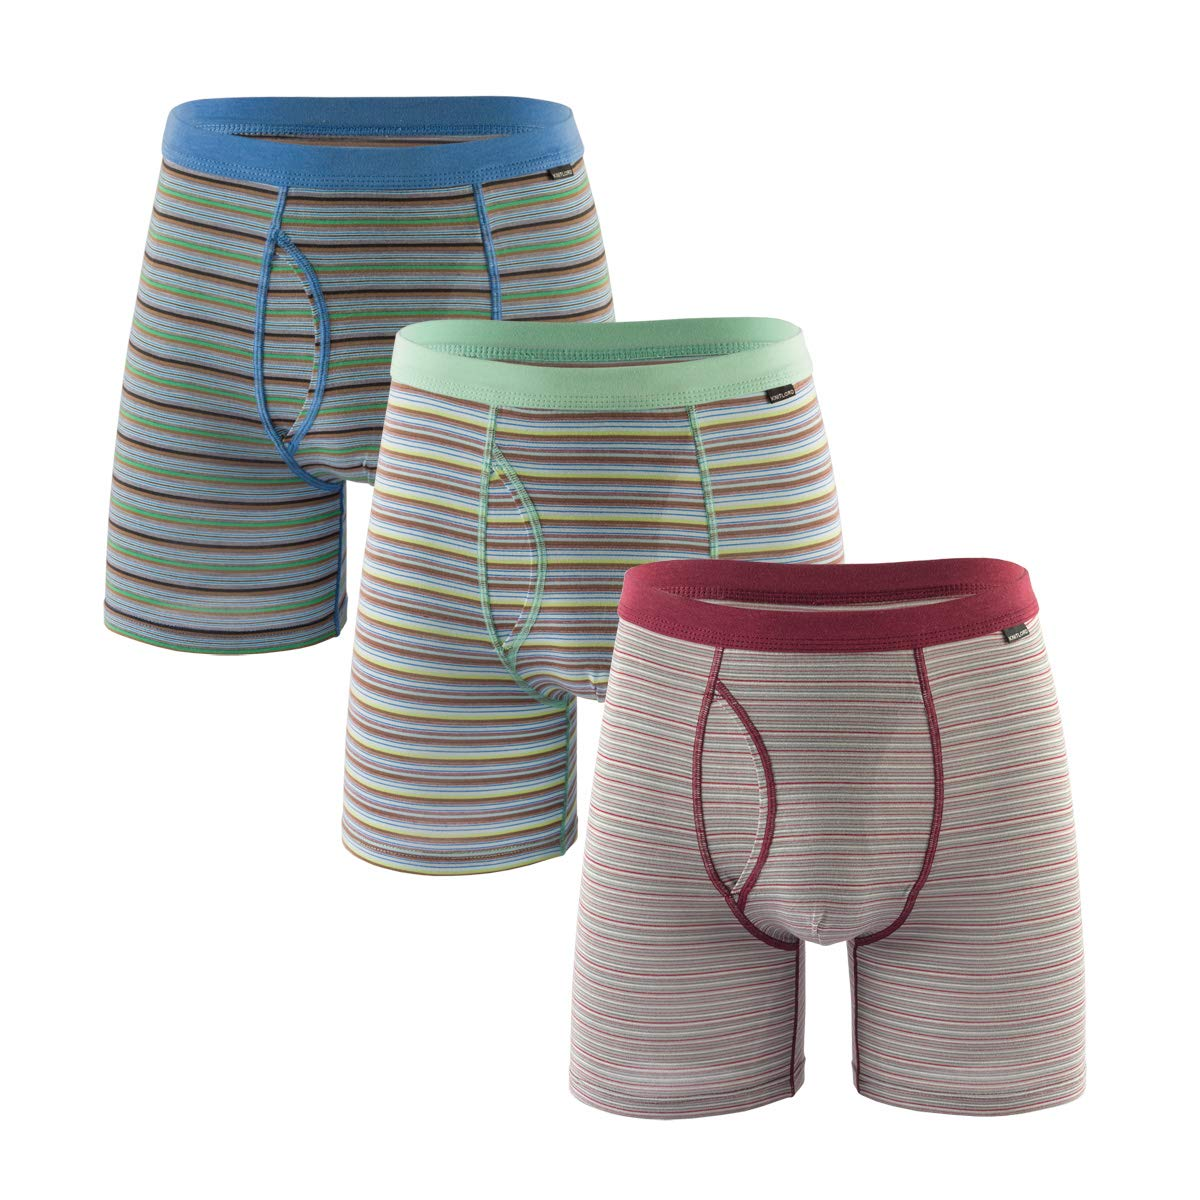 Mens Luxury Bamboo Boxer Underwear Ultra Soft and Breathable Stripes Boxer Briefs 5 Pack